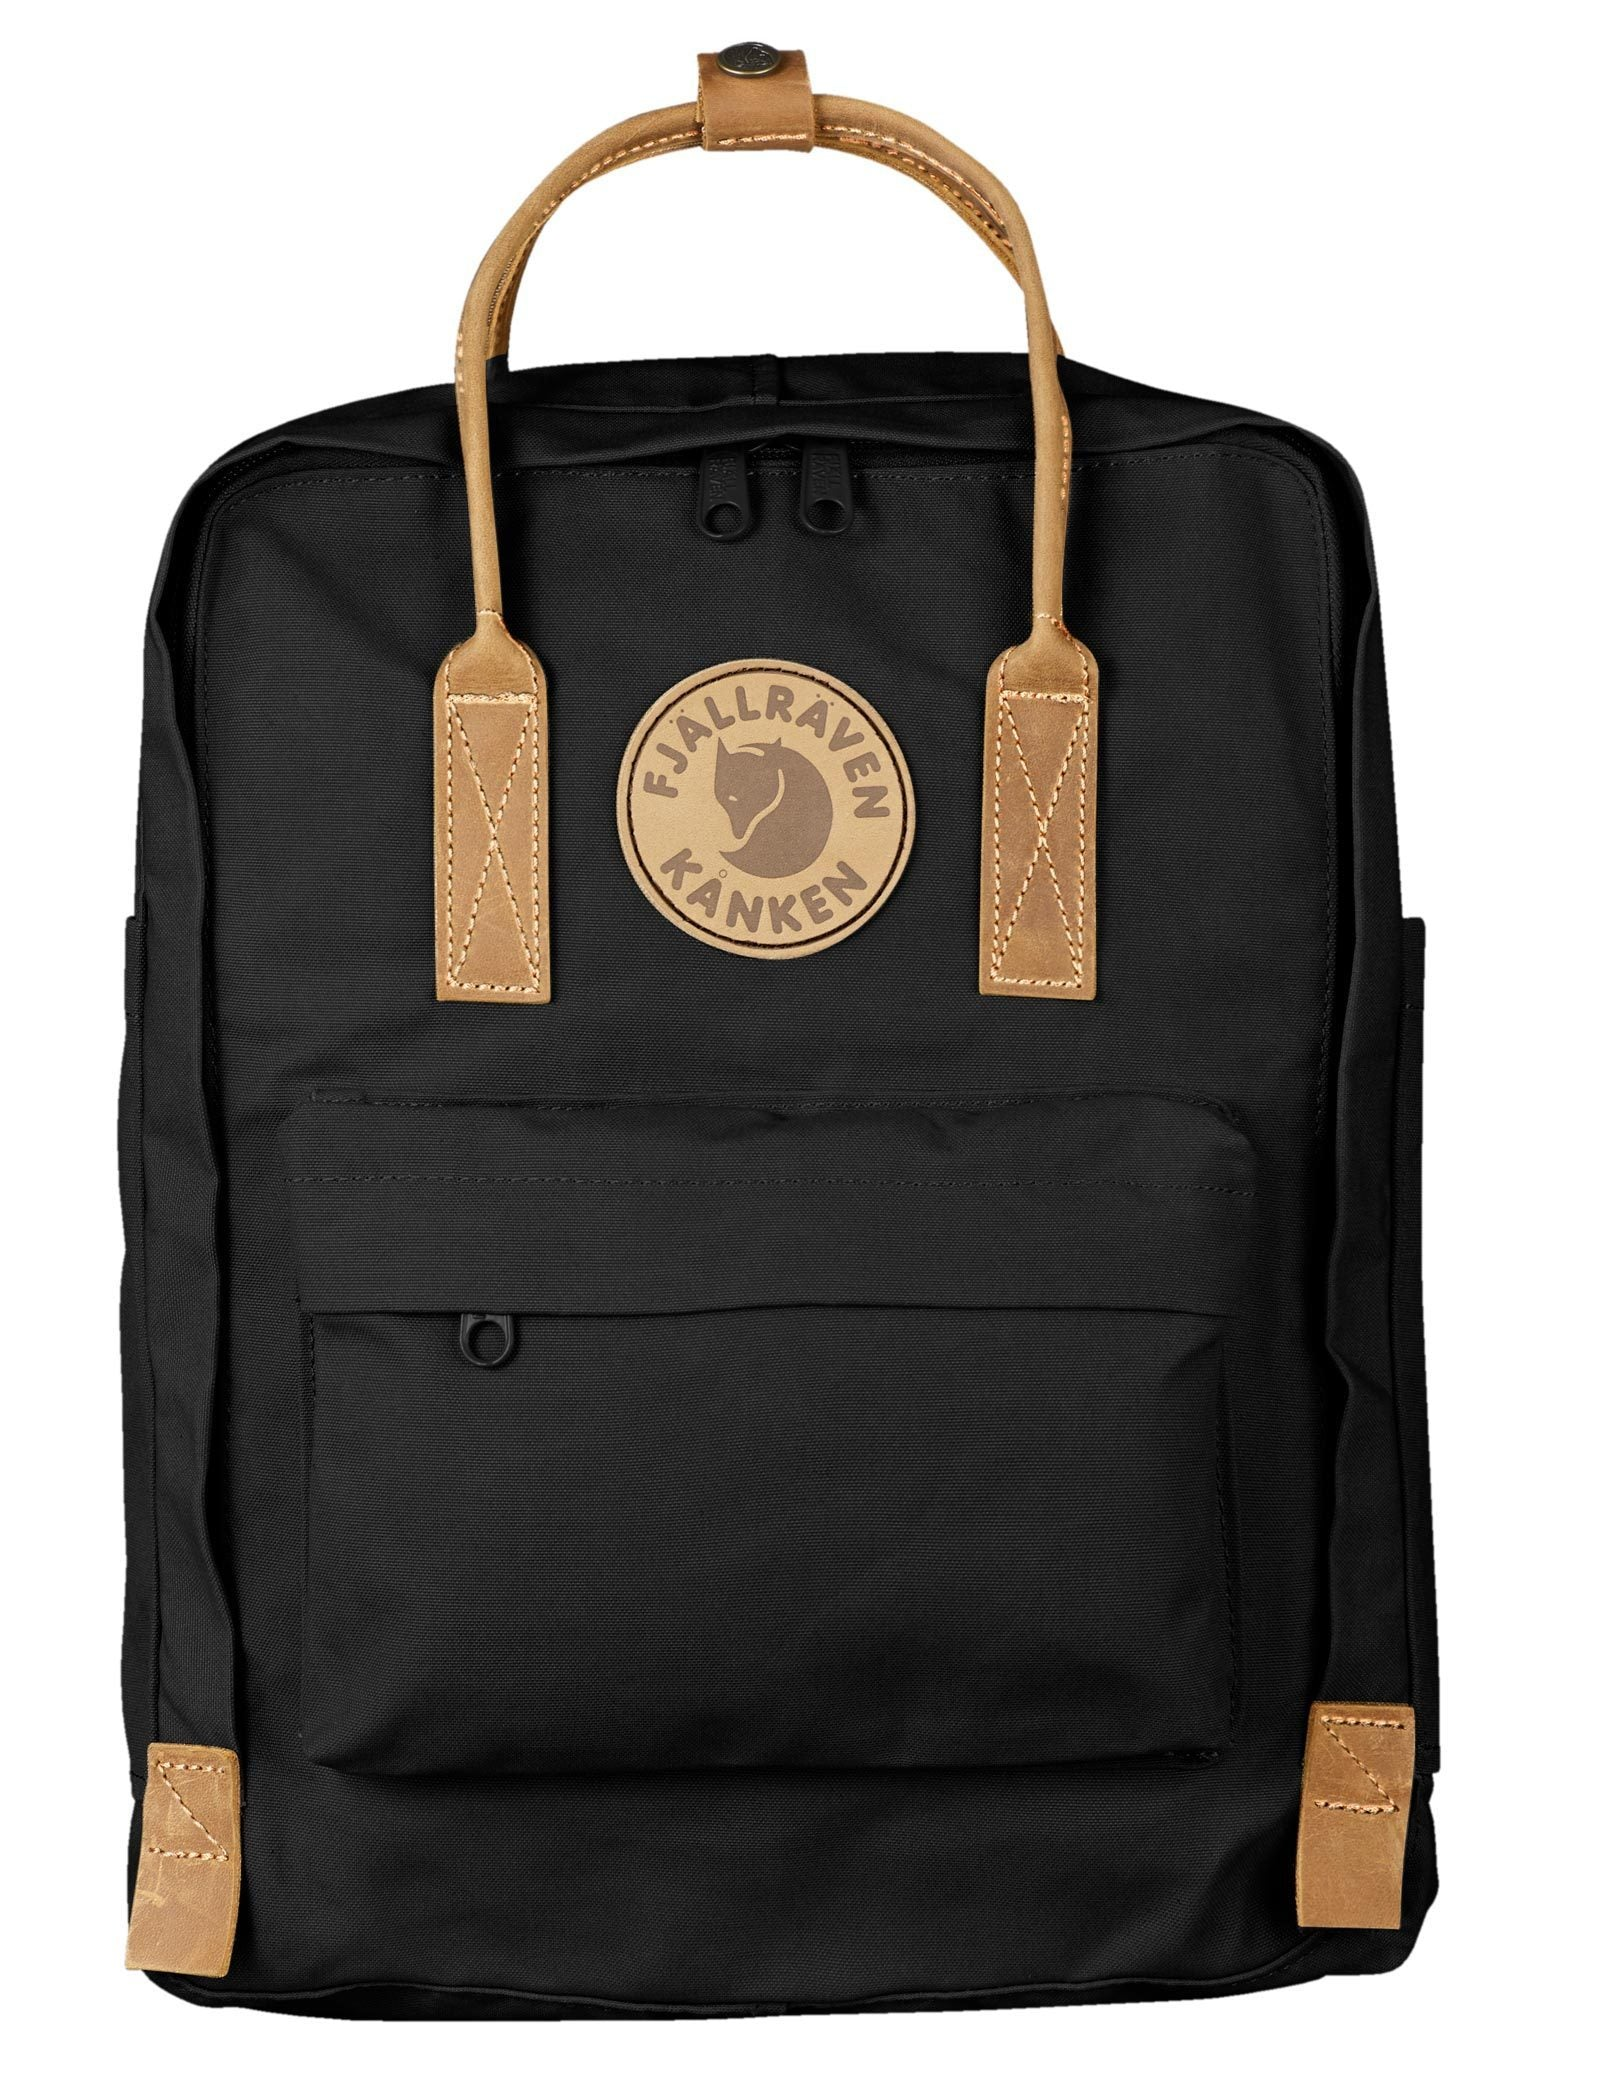 9a262a7122 Kanken No.2, our popular Swedish backpack perfect for school – Fjällräven